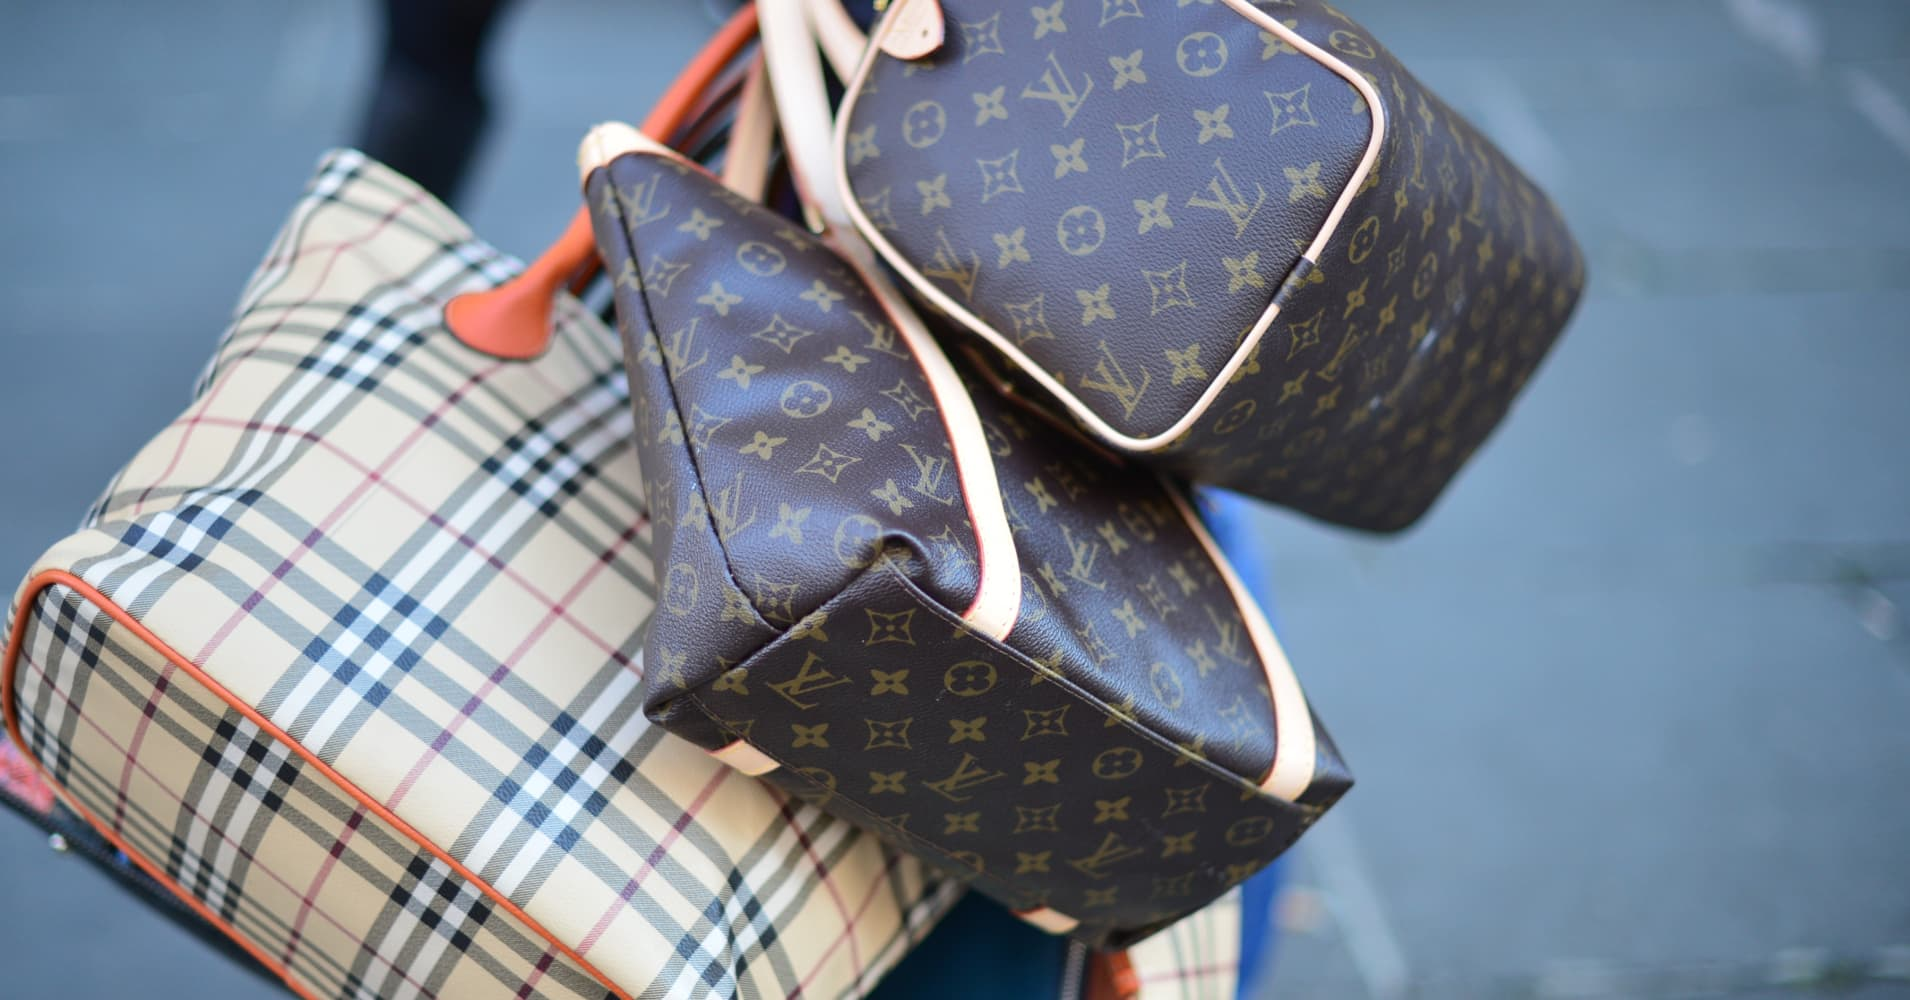 Alibaba, Louis Vuitton, Samsung and others tackle fake goods with big data